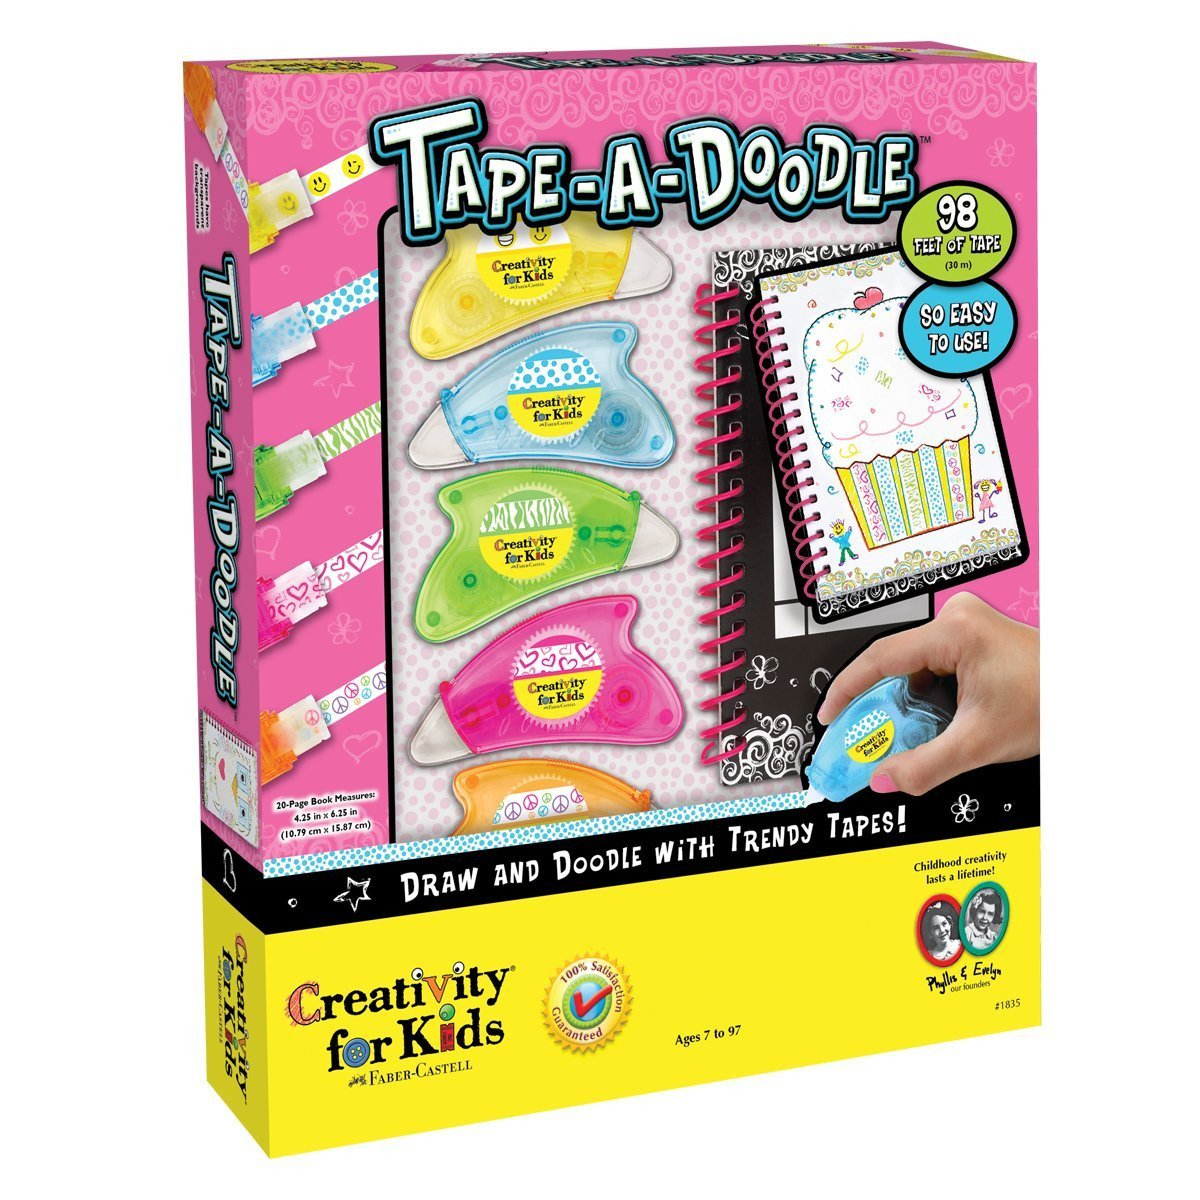 Creativity for Kids - 1835007 | Tape-A-Doodle Craft Kit - image 1 de 1